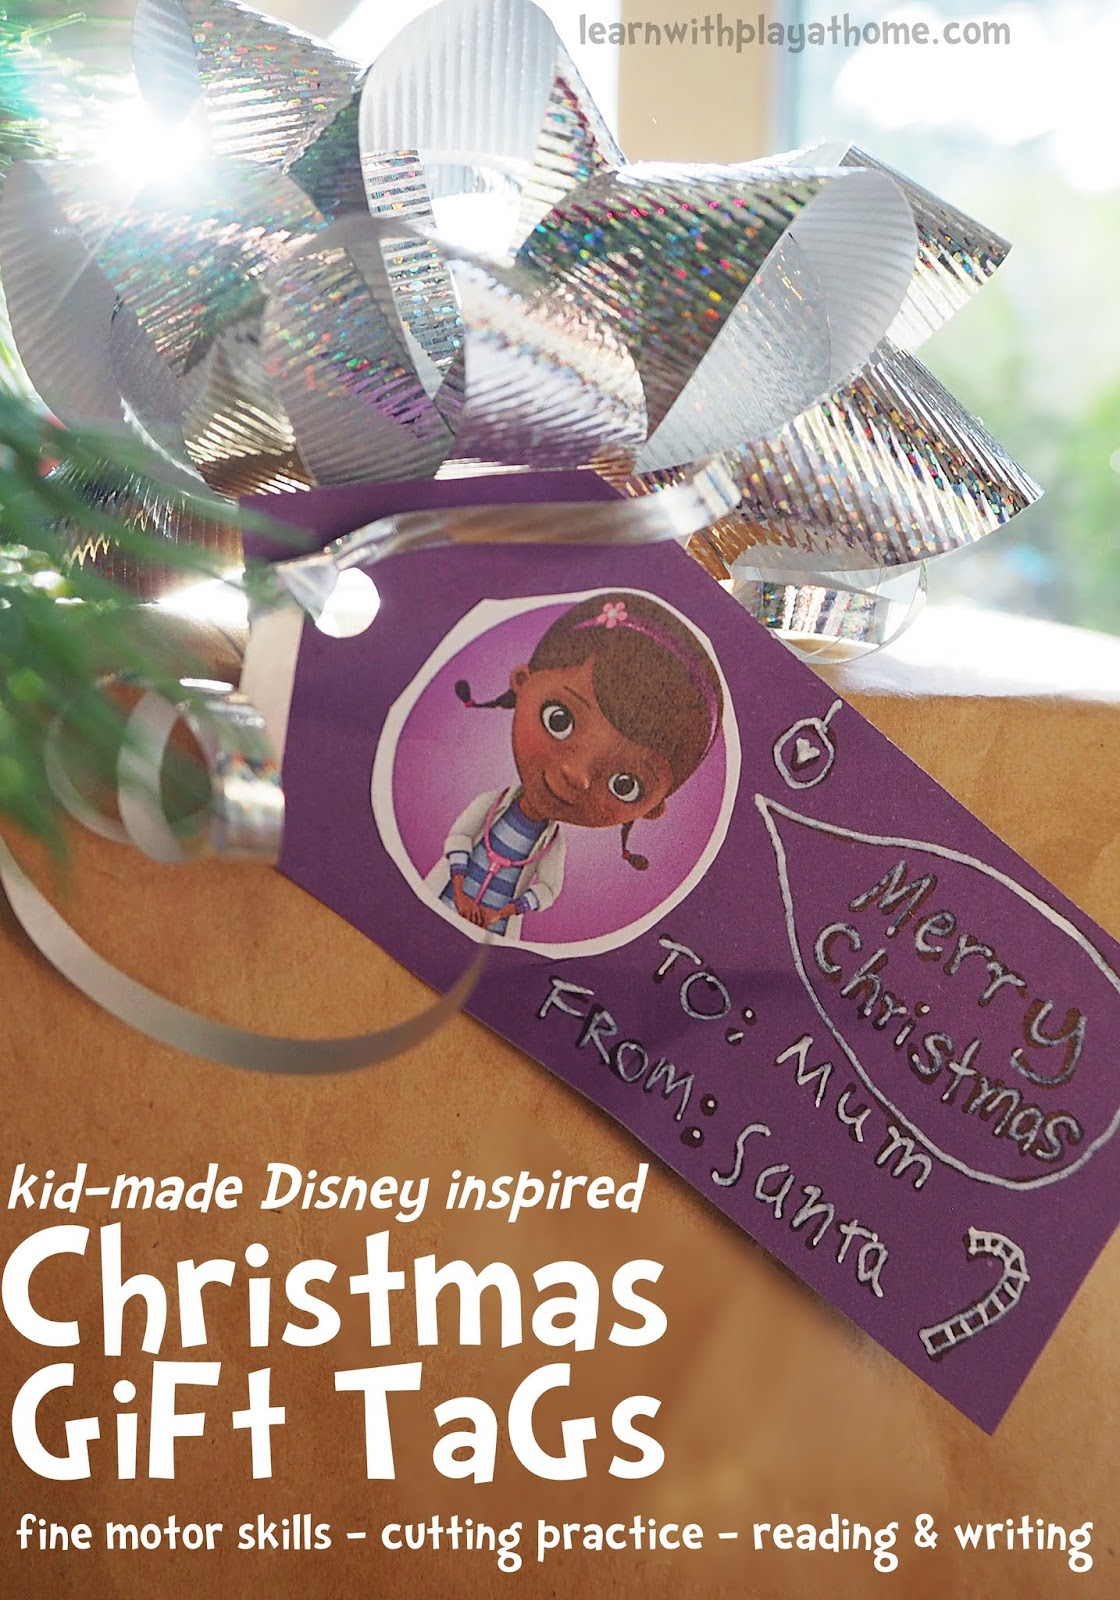 Learn with Play at Home: DIY Disney inspired Christmas Gift-Tags for ...